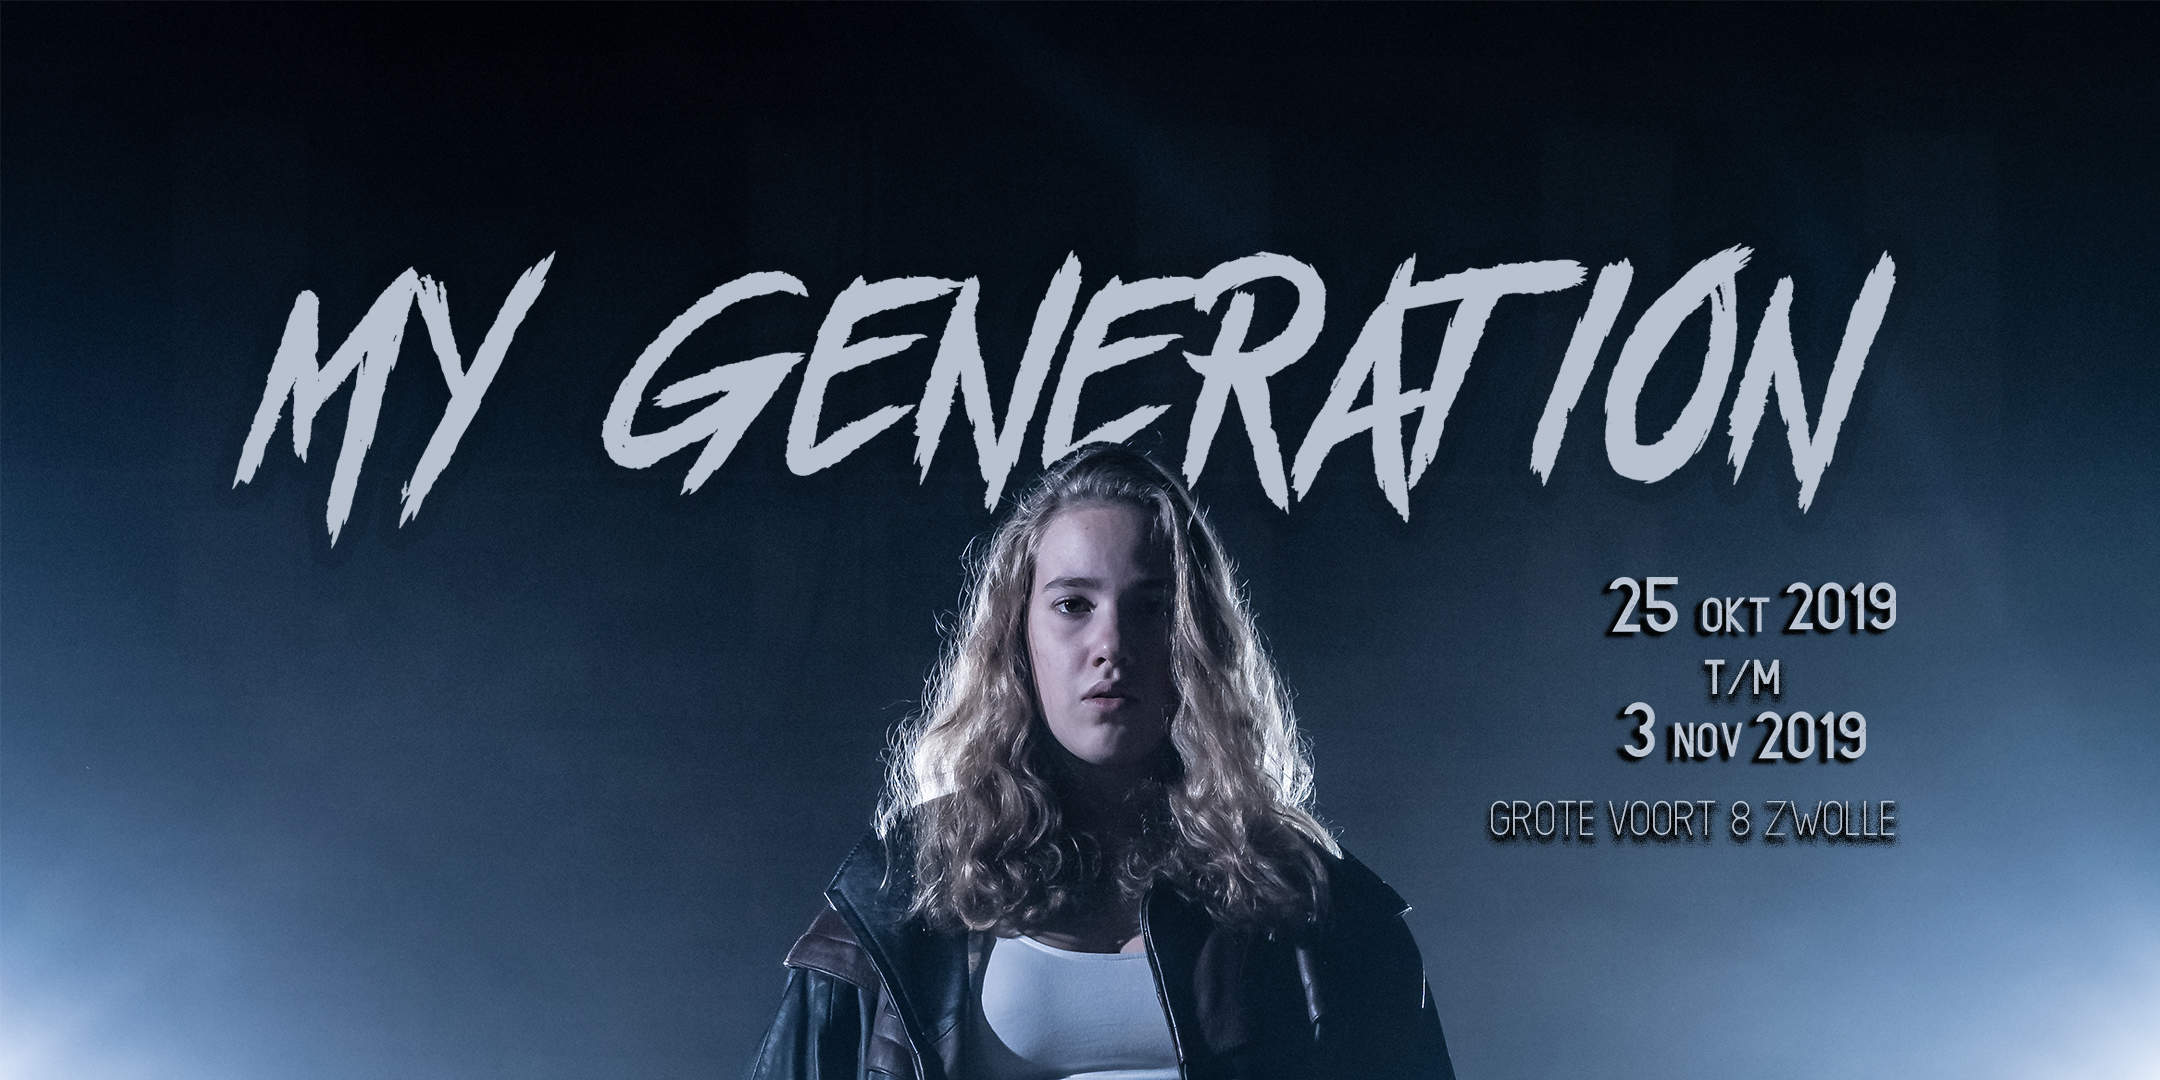 Kaartverkoop My Generation is gestart!